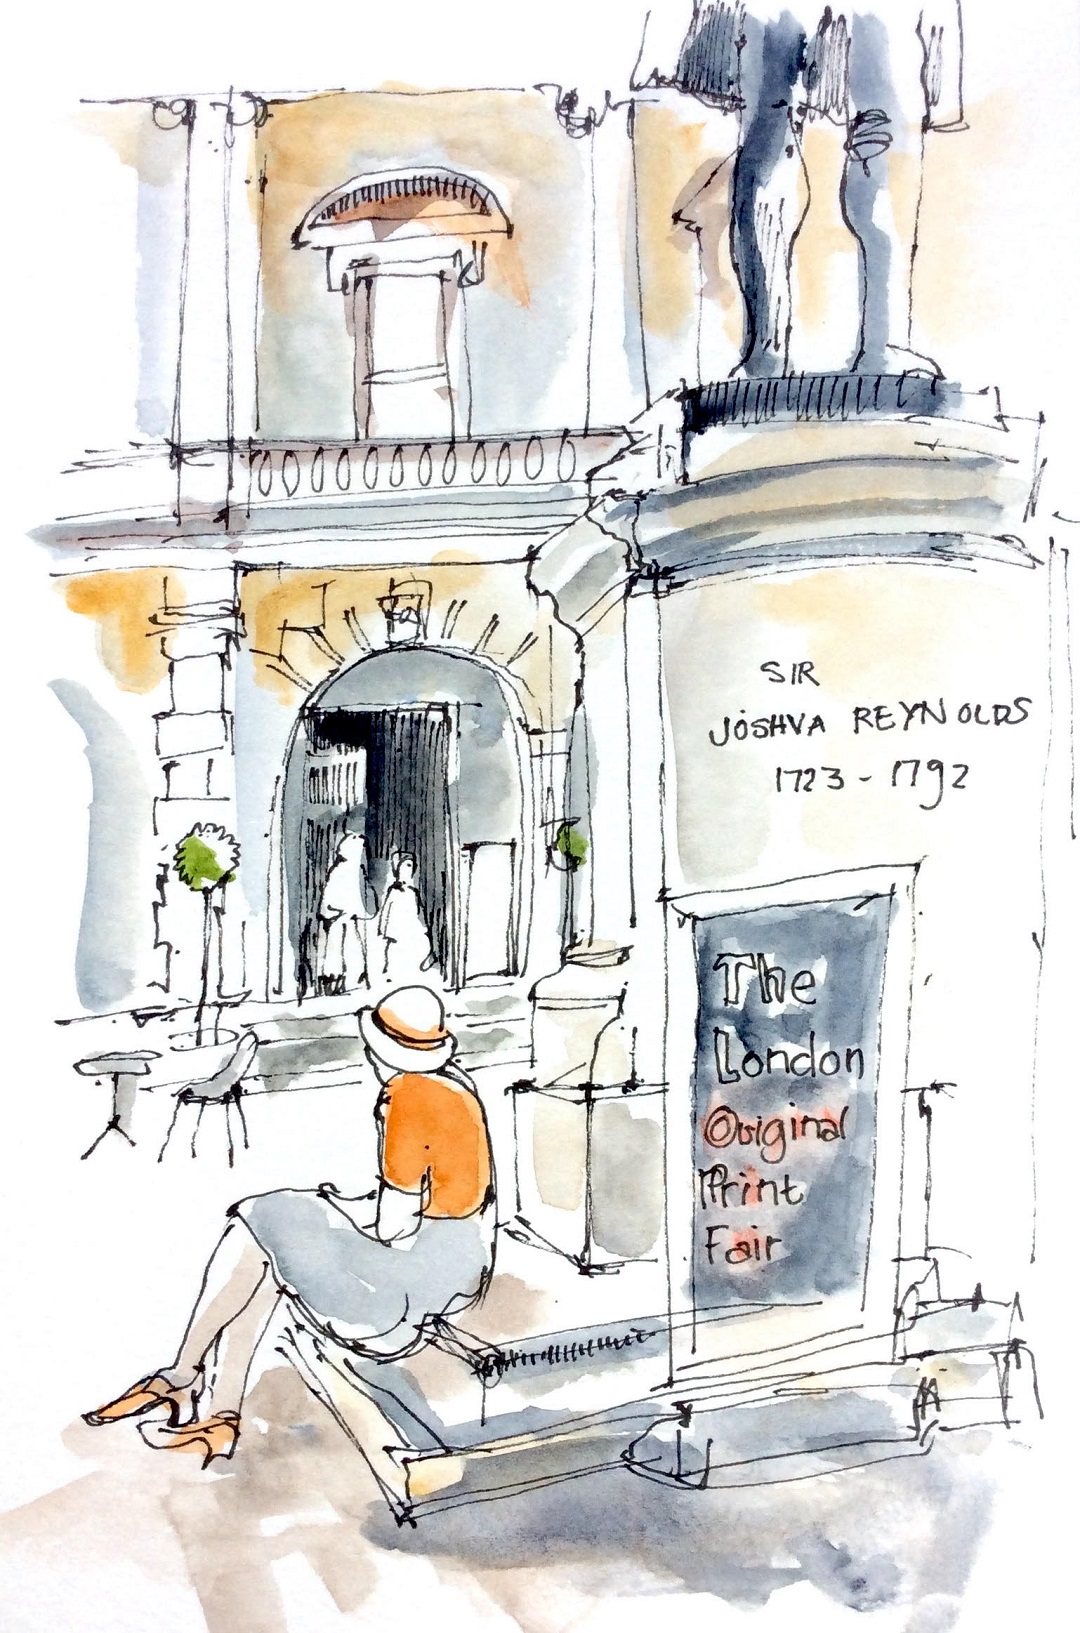 Royal Academy, Lady at the Print Fair, May 2017 Katie Clare Pen and wash, drawn in the artist's Moleskine watercolour sketchbook, 13 x 21 cm